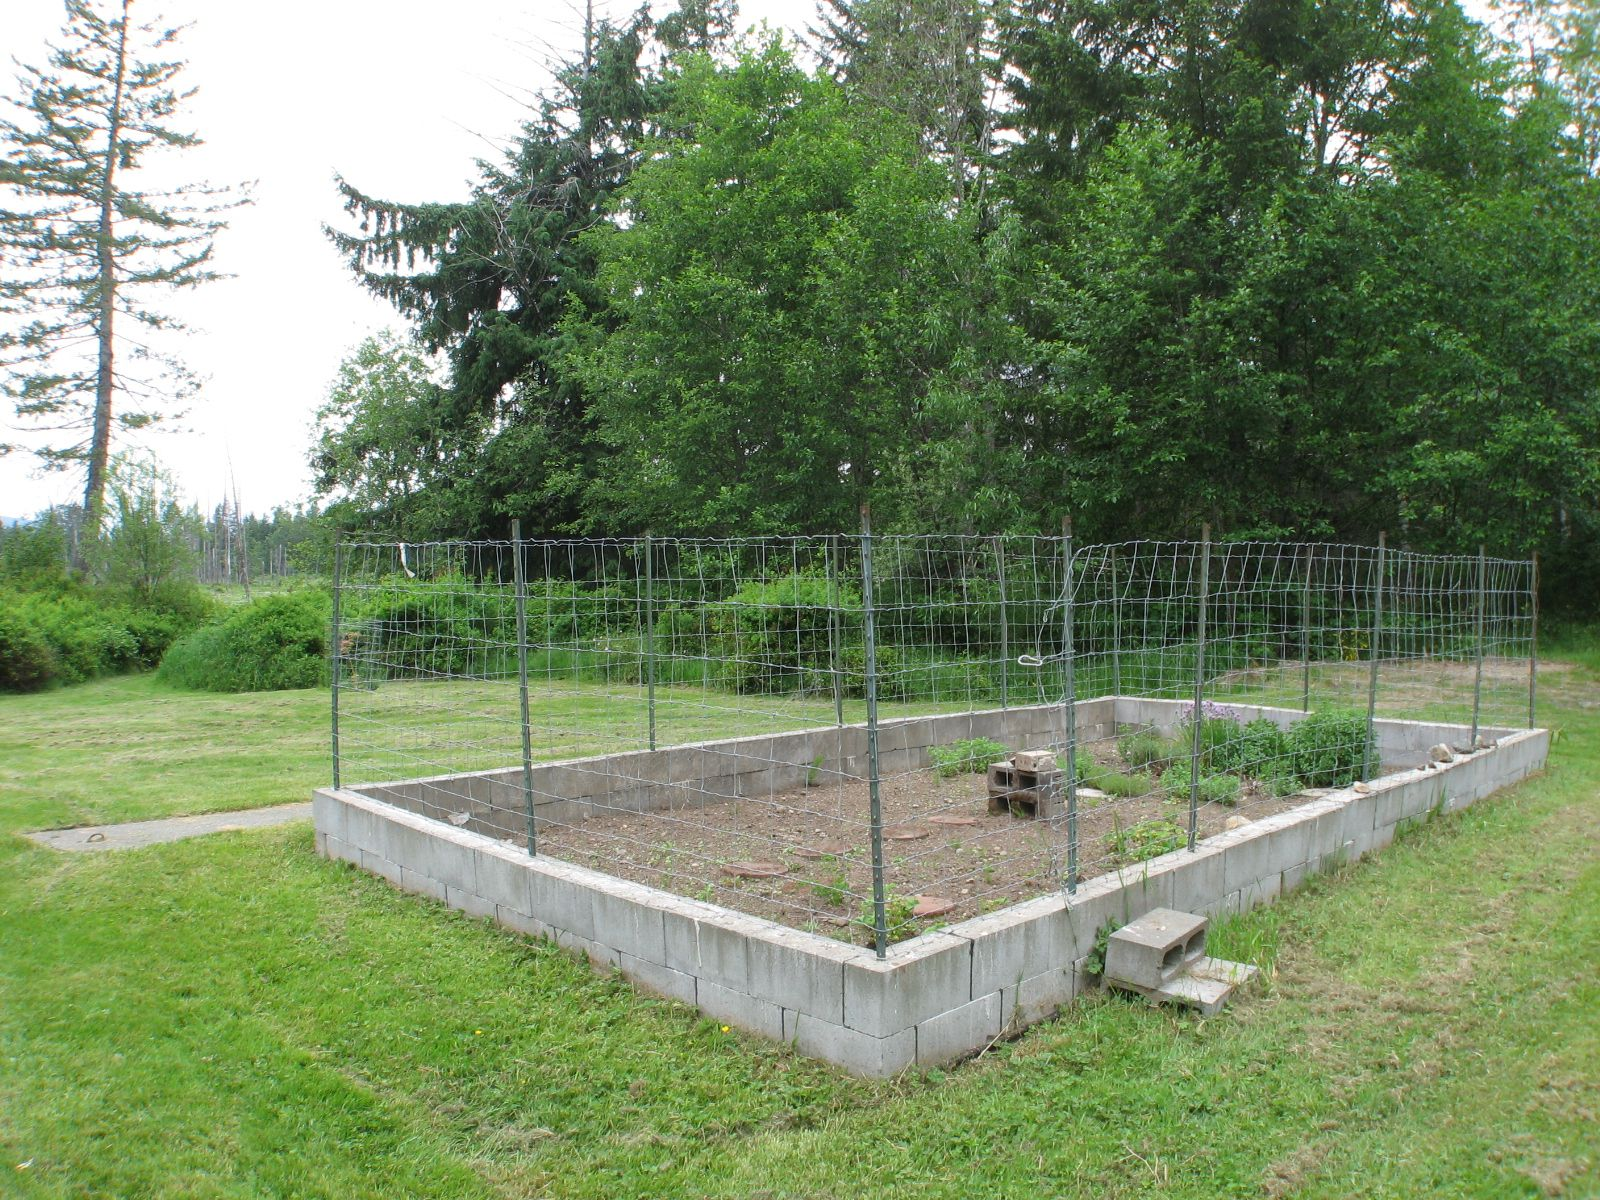 deer proof vegetable garden ft deer proof fence surrounds the fertile soil - Deer Proof Vegetable Garden Ideas